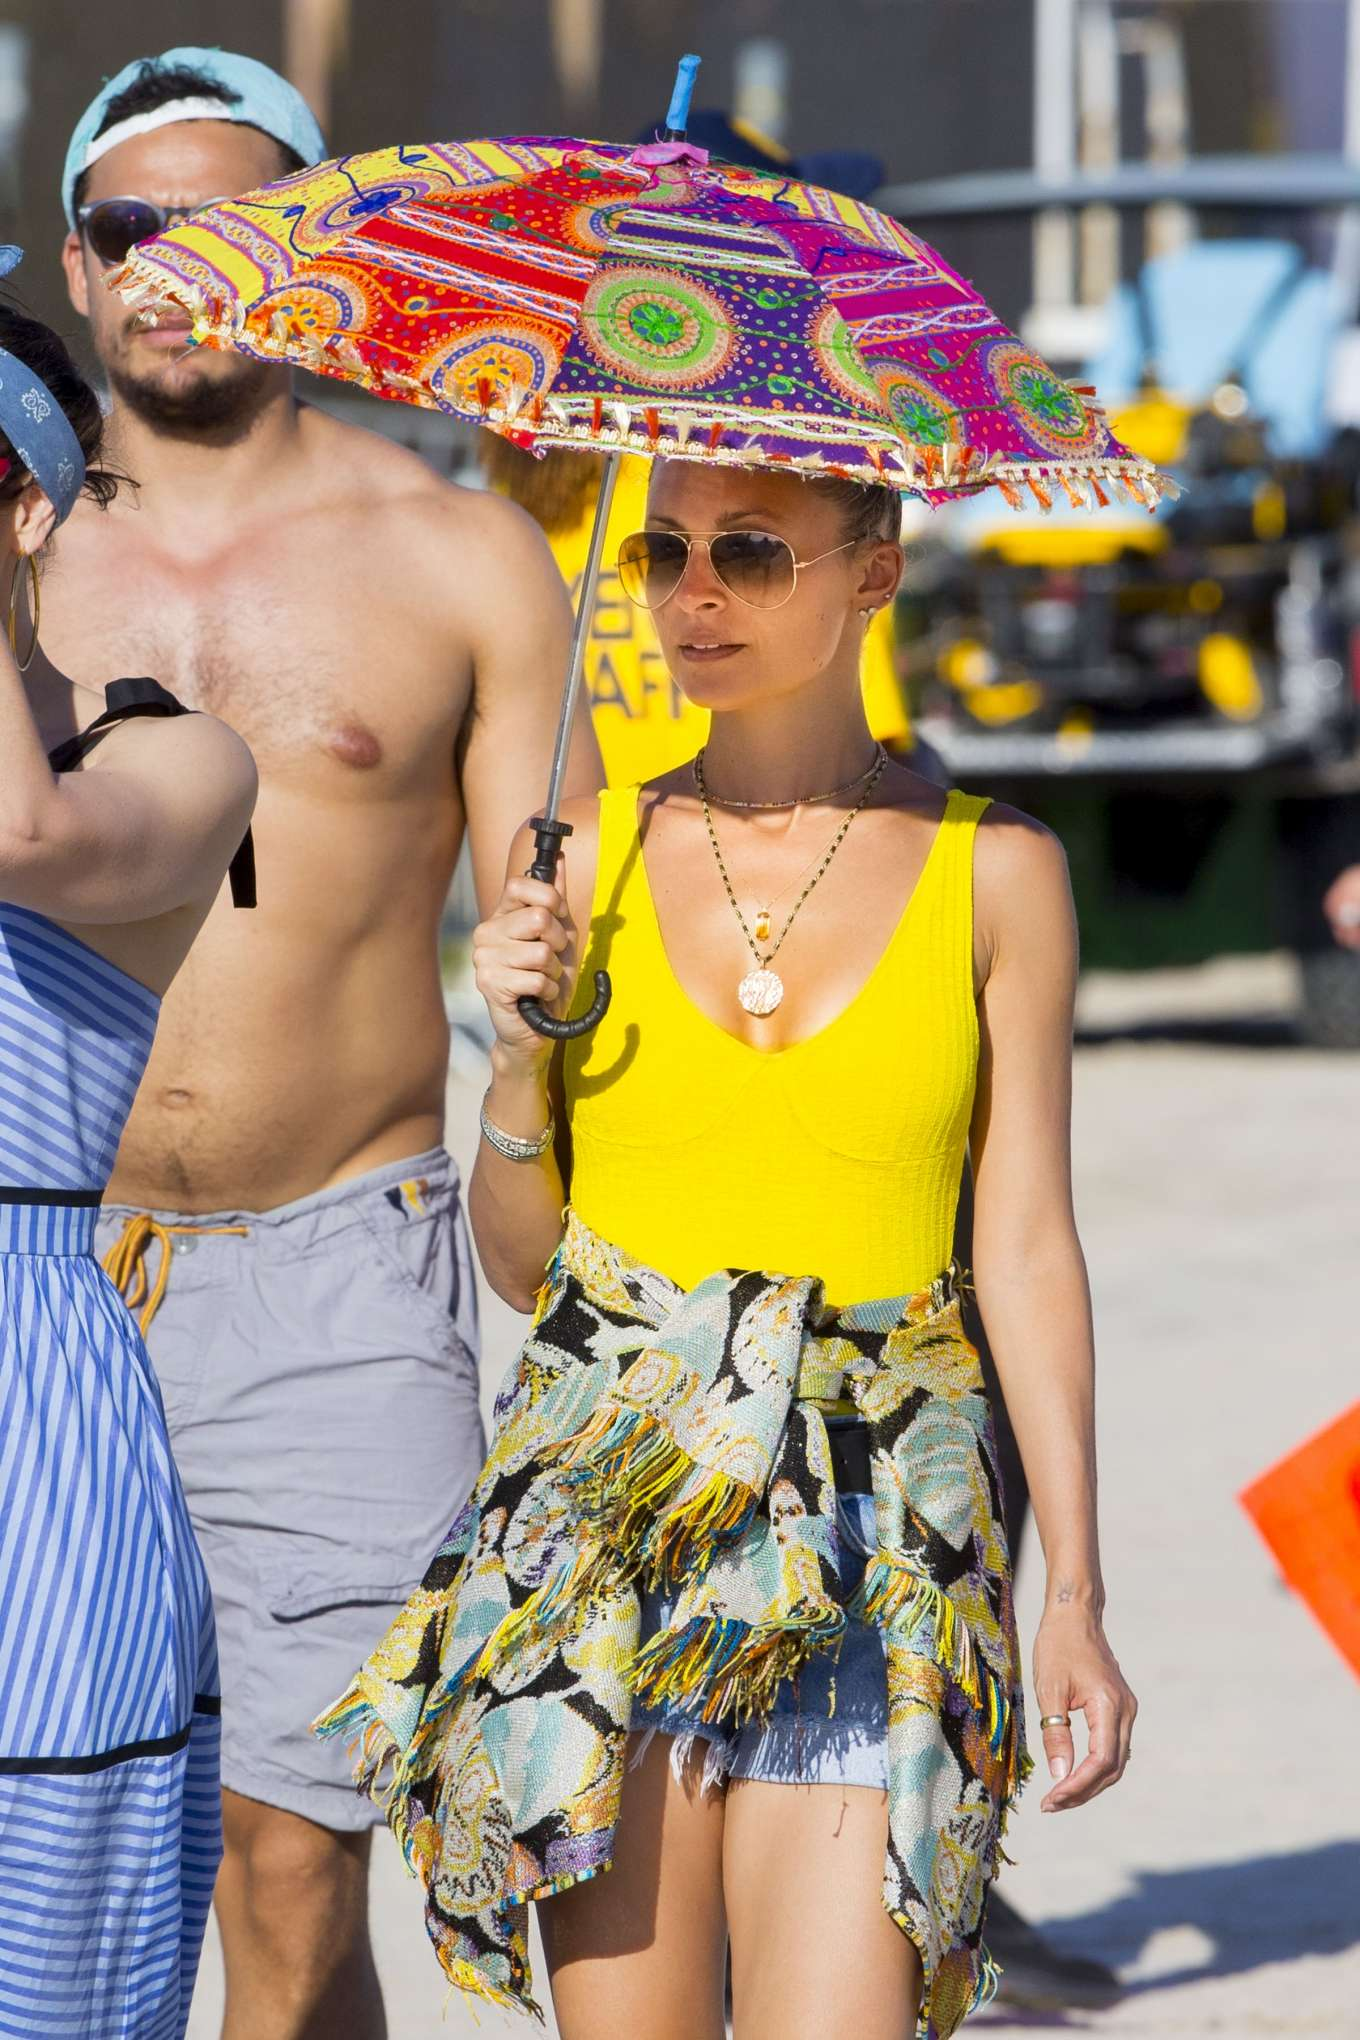 Nicole Richie at the Jazz Fest in New Orleans